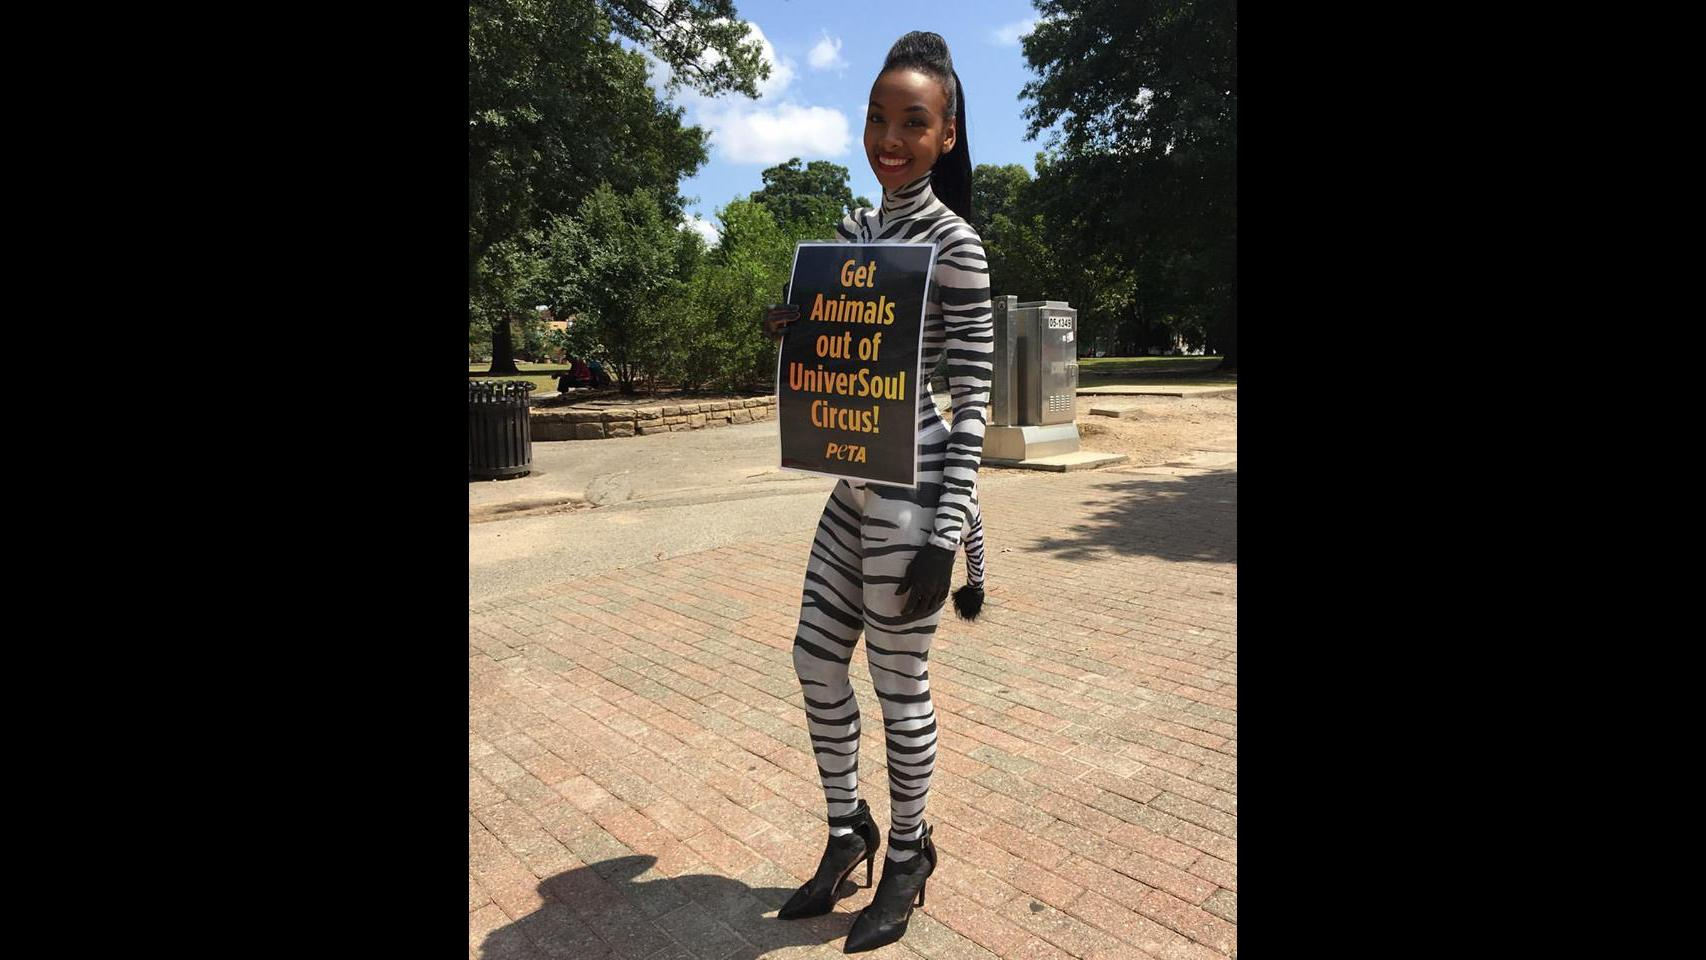 PETA supporter Nikki Ford during a recent protest of UniverSoul Circus in Raleigh, N.C. (Courtesy PETA)